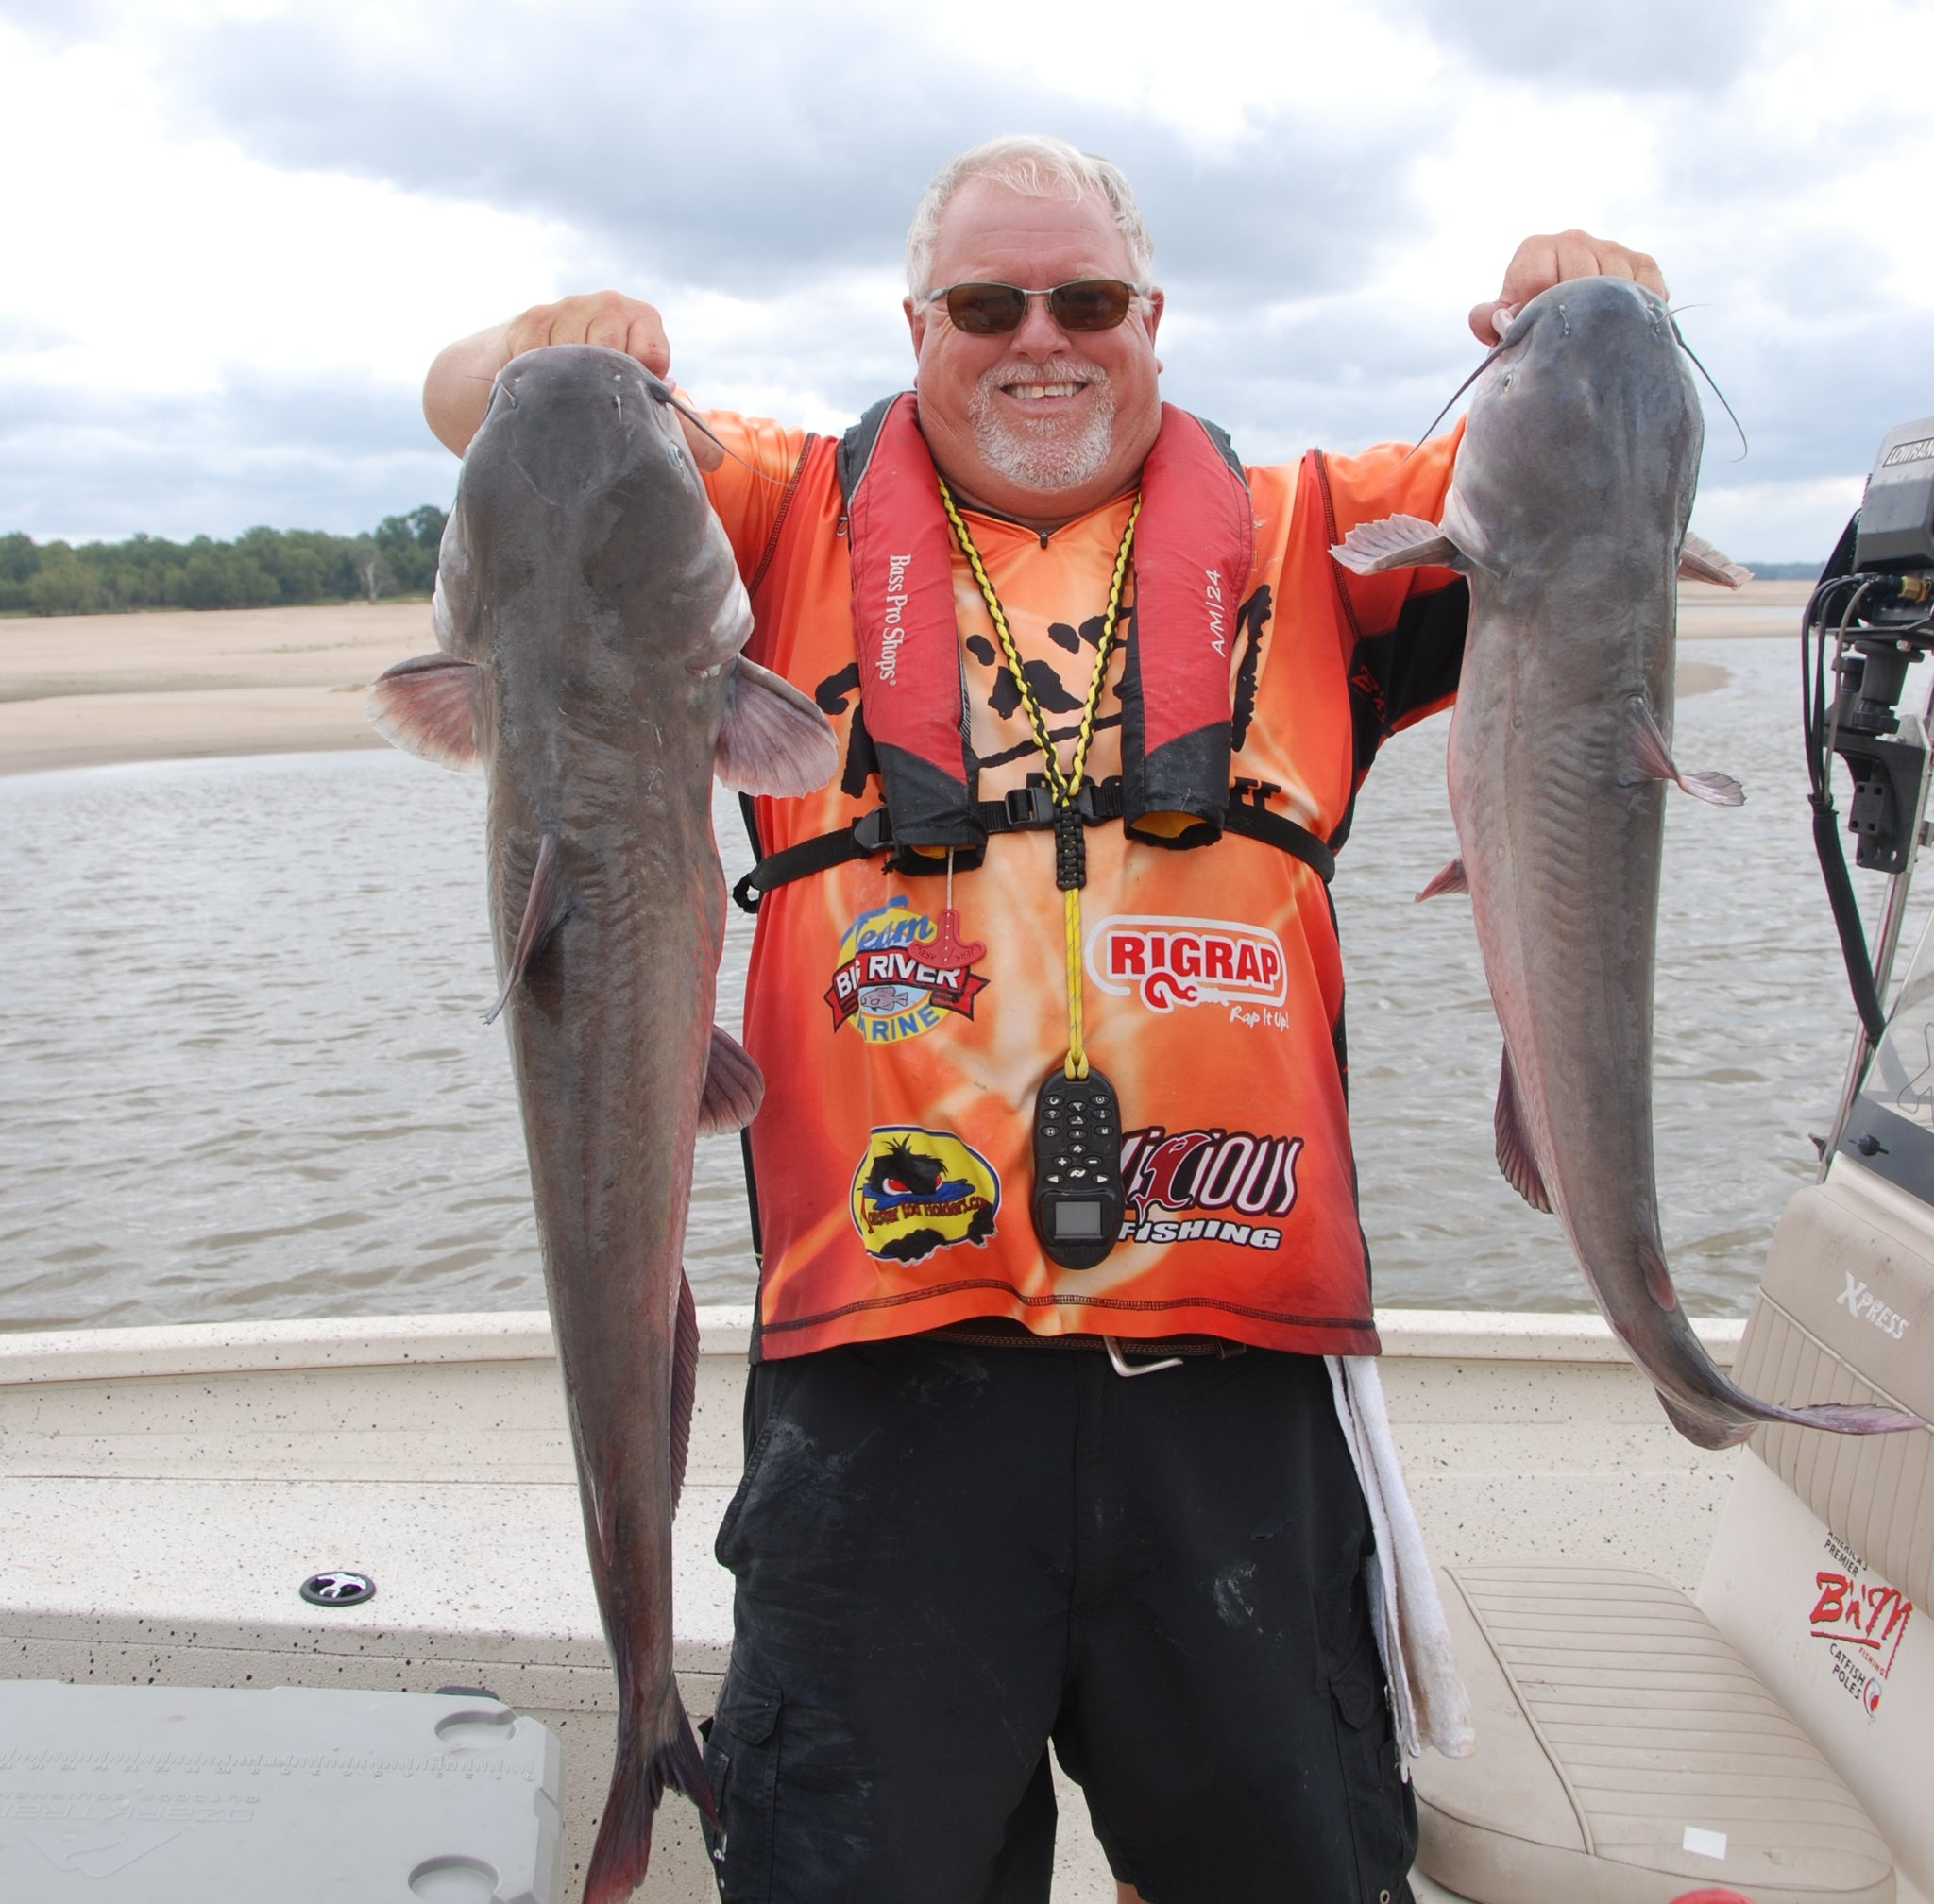 David Magness on Fishing for Suspended Catfish